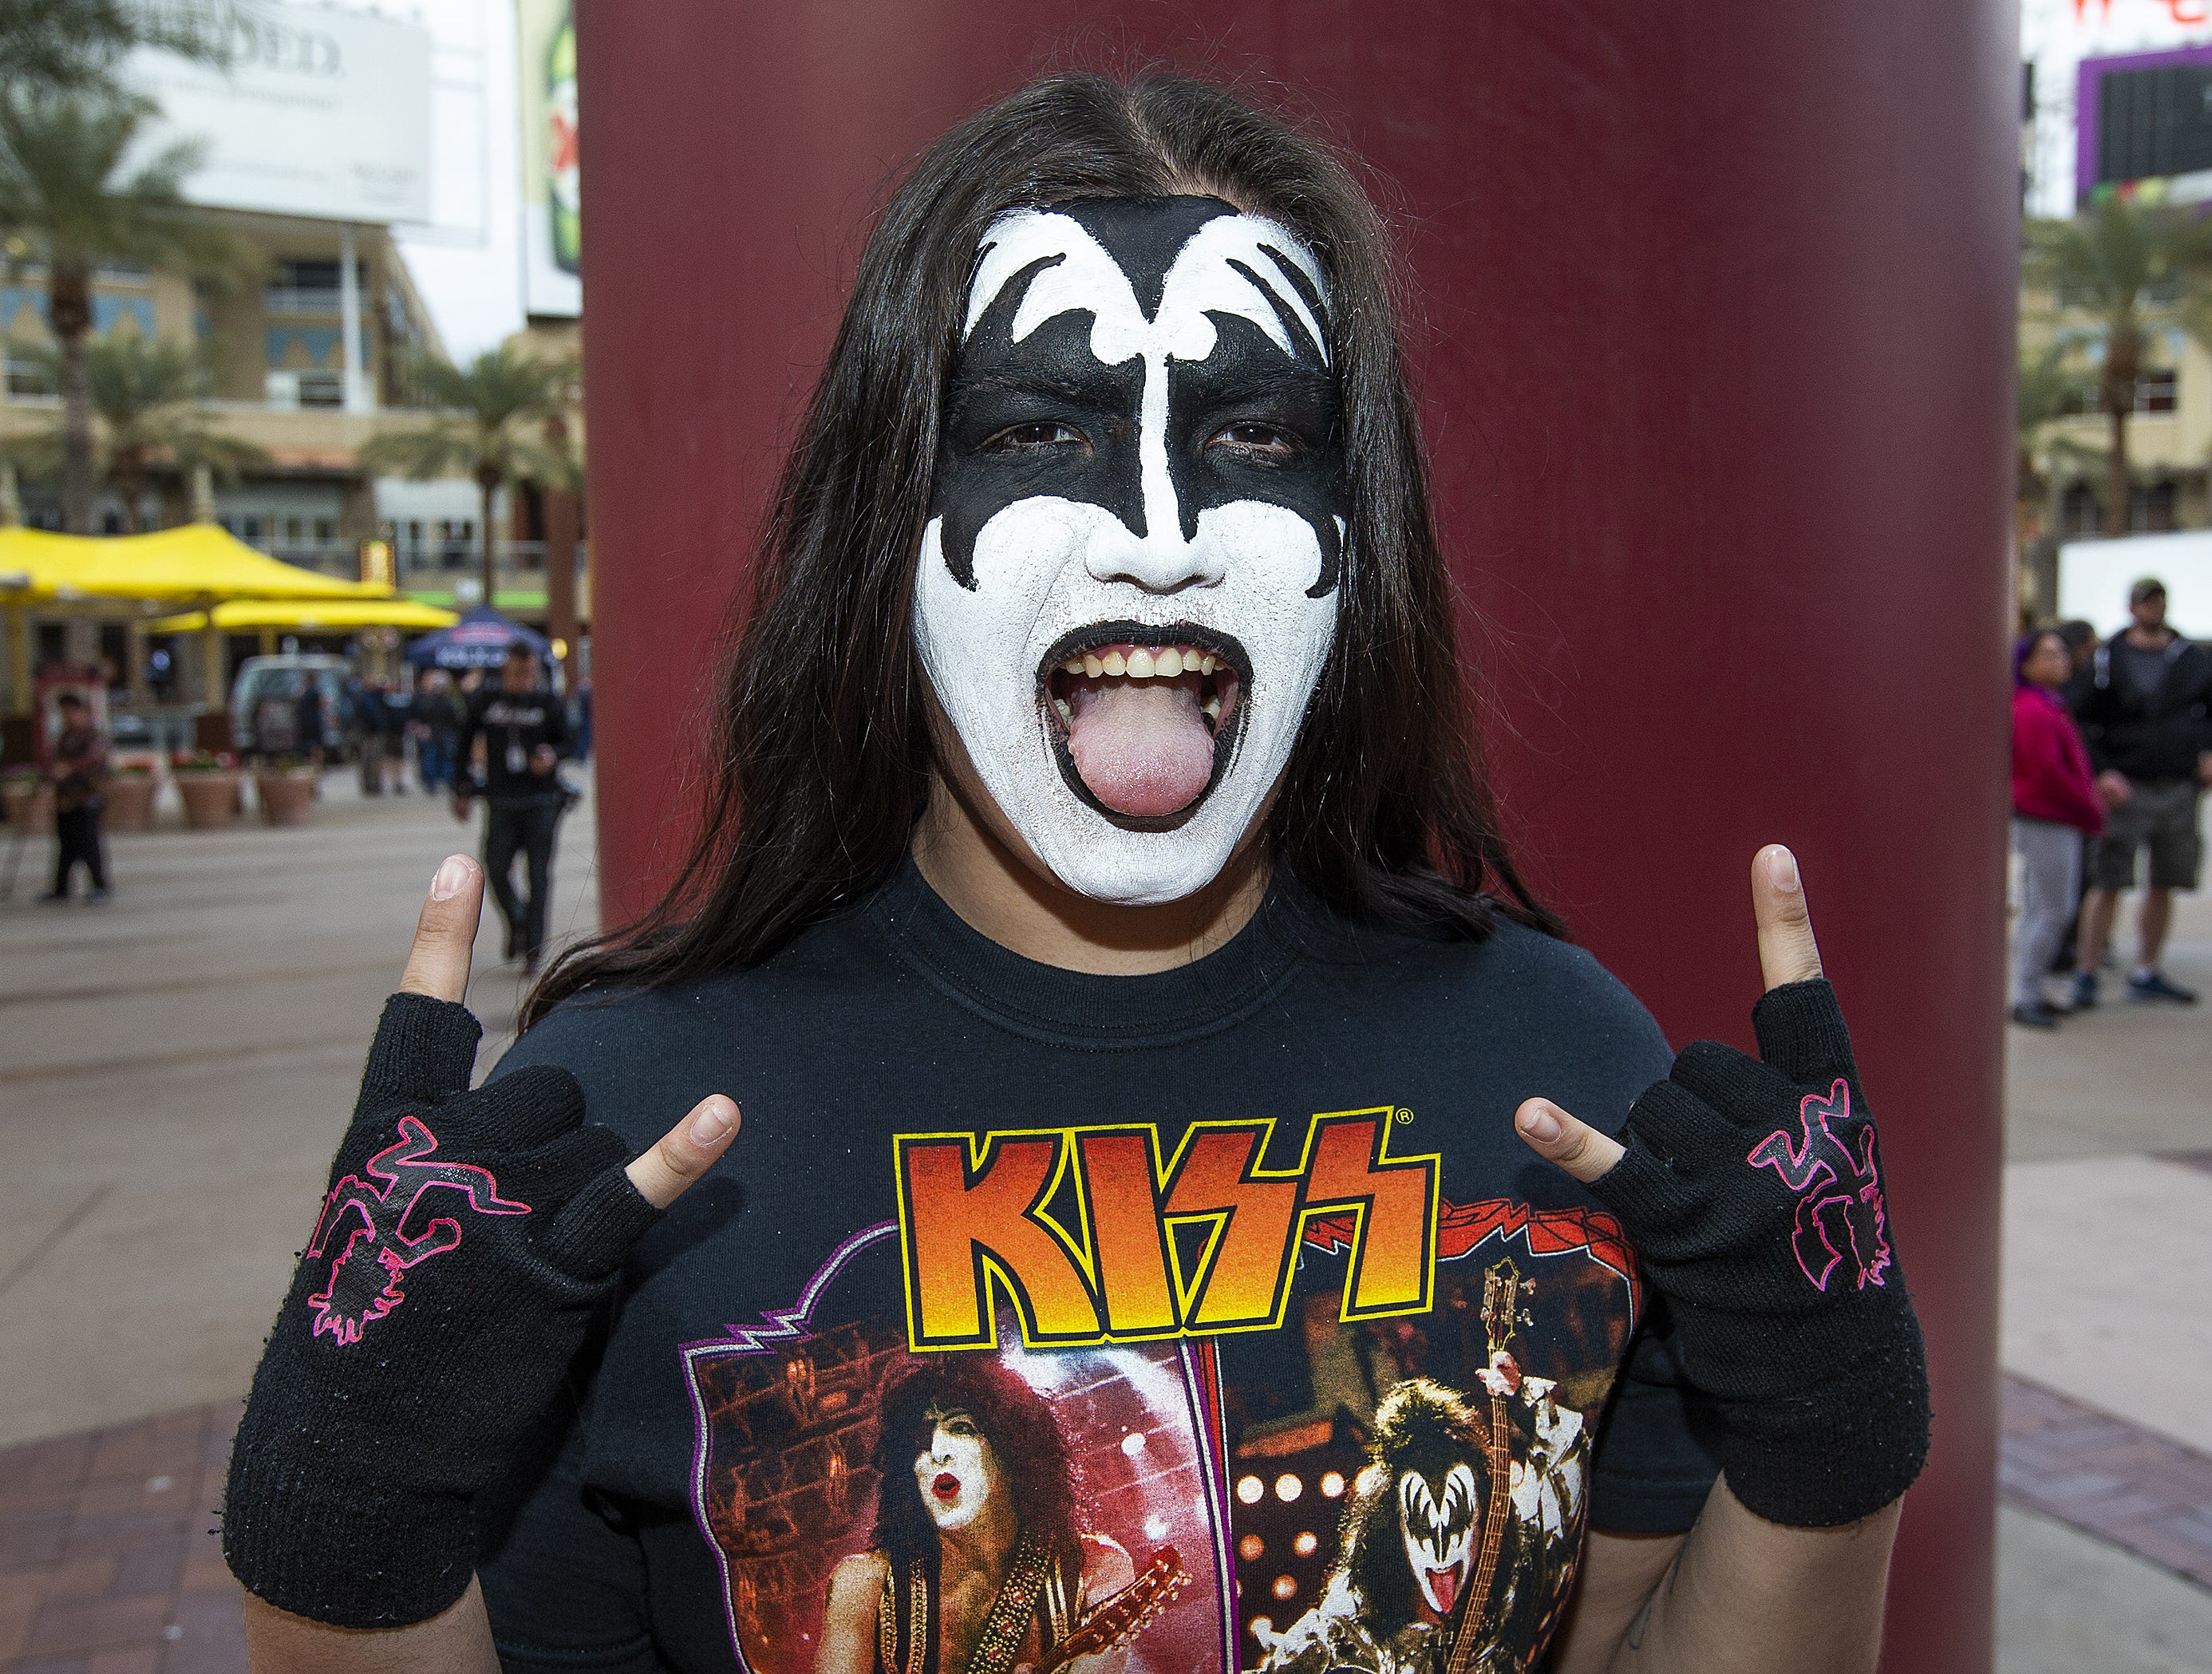 Angela Lozano, 19, of Phoenix, shows off her best KISS makeup prior to the concert by the famed group at Gila River Arena in Glendale on Wednesday, Feb. 13, 2019.  The concert was part of the End of the Road World Tour, the band's farewell to the fans.